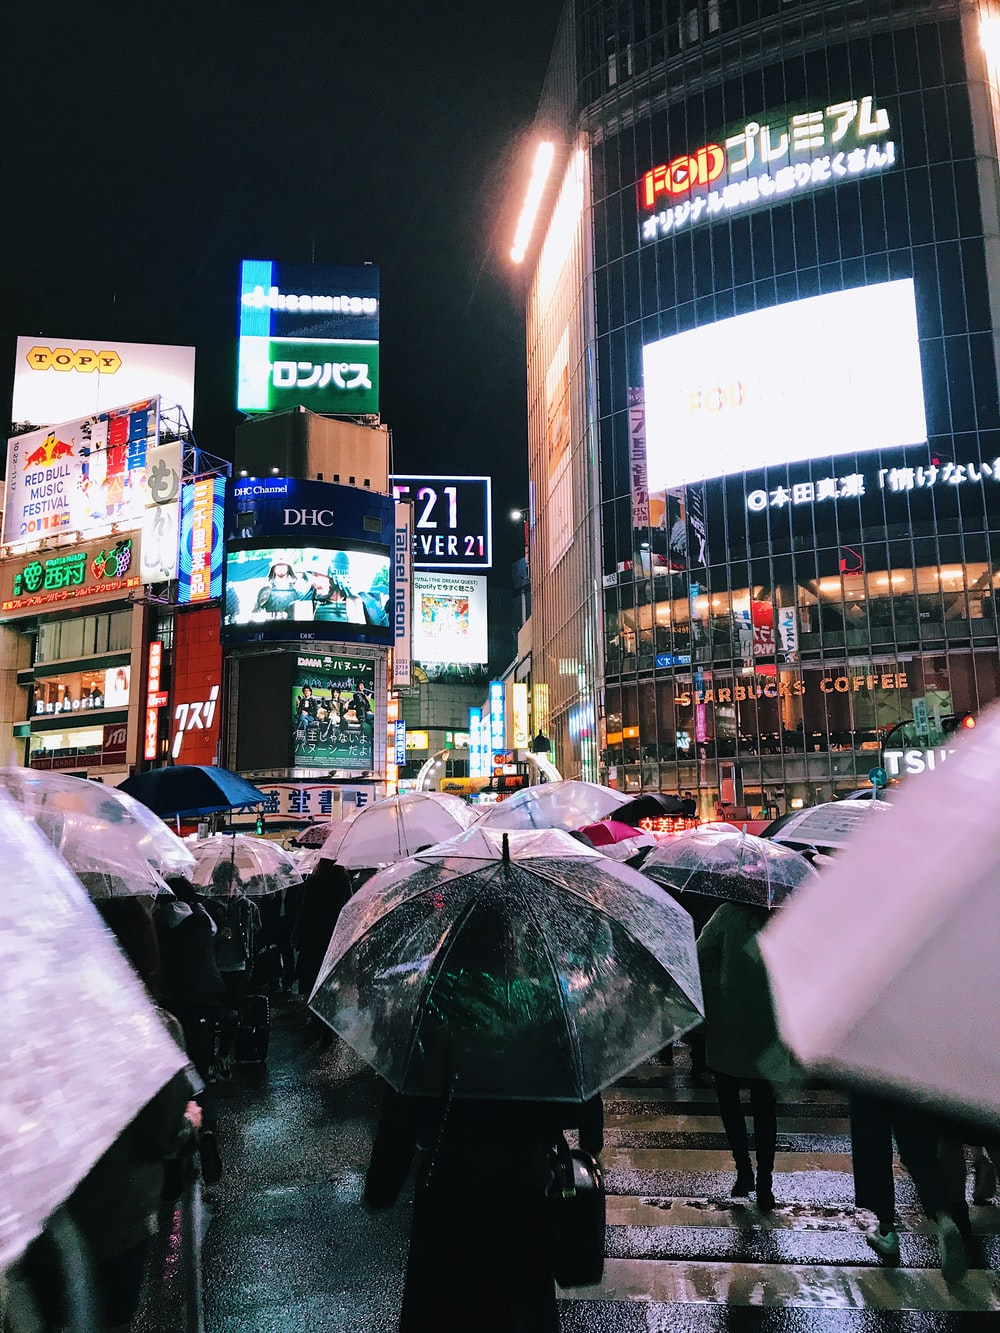 people with umbrellas walking near buildings during night